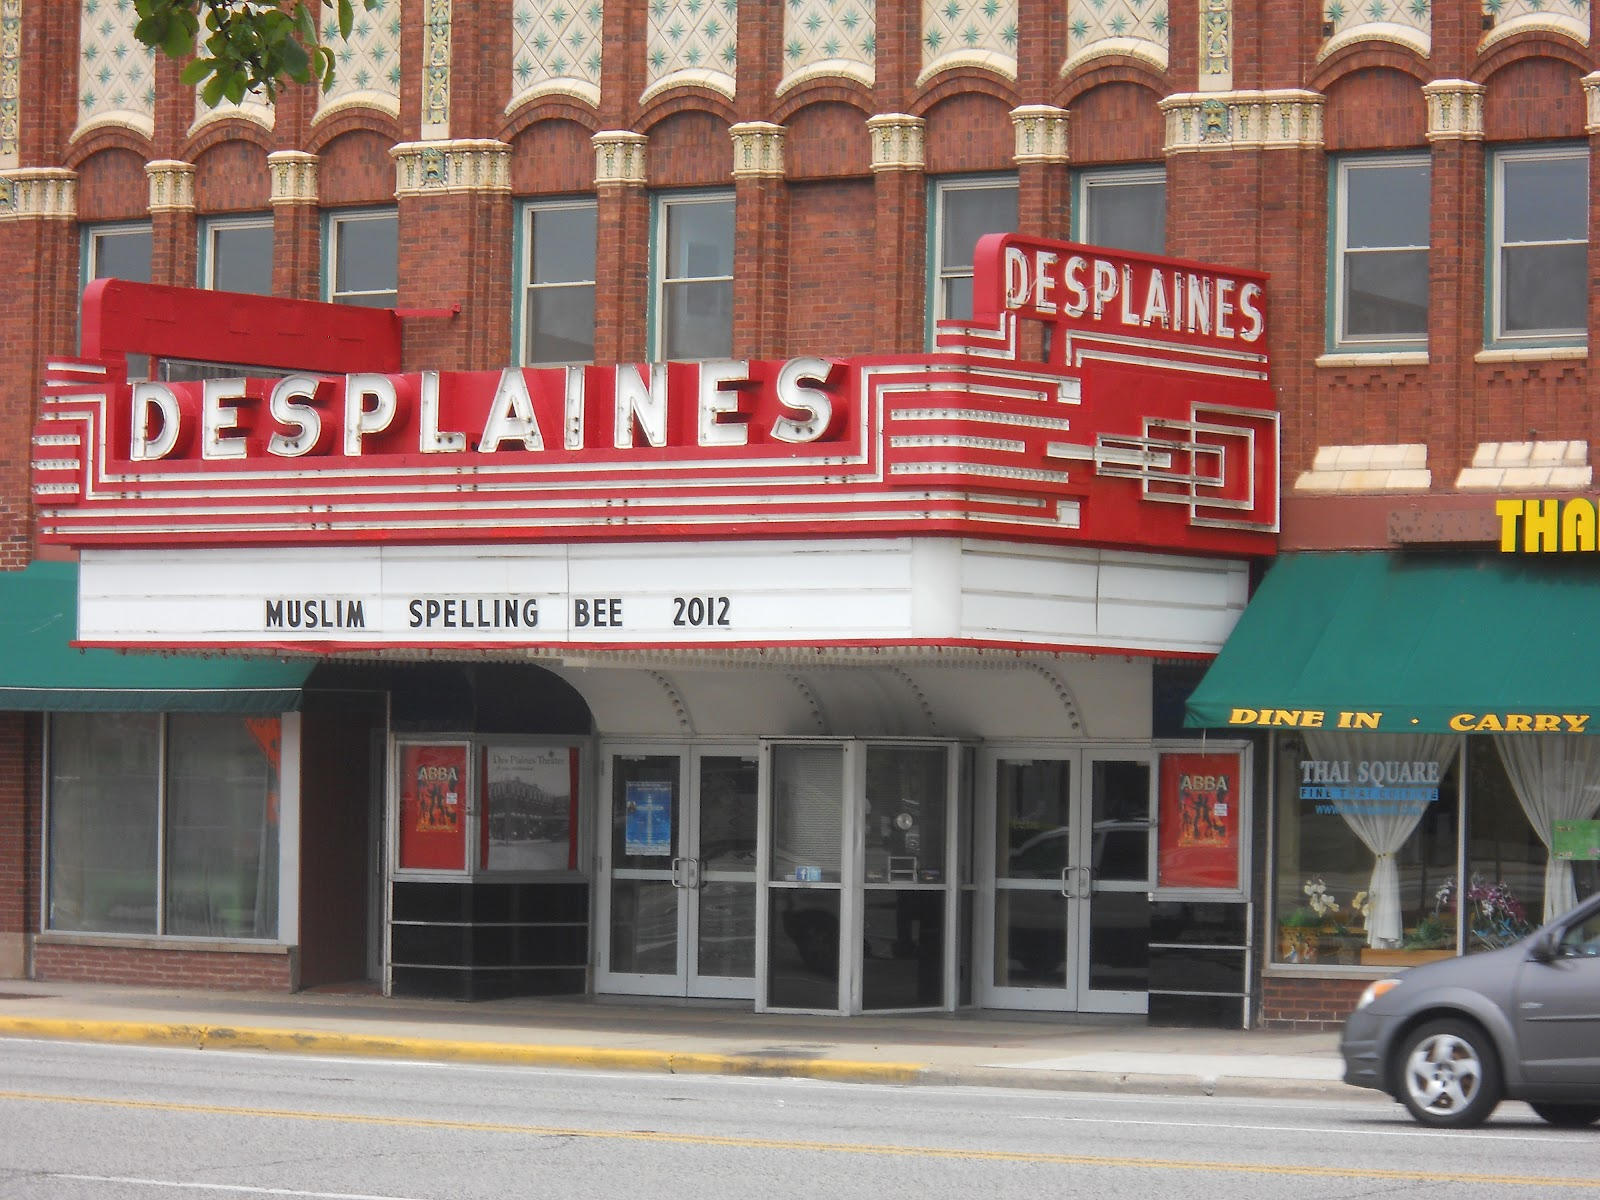 des plaines muslim The us justice department and des plaines have tentatively settled a lawsuit claiming the city unfairly denied a muslim group from opening a place of worship the city council will vote on the terms monday.